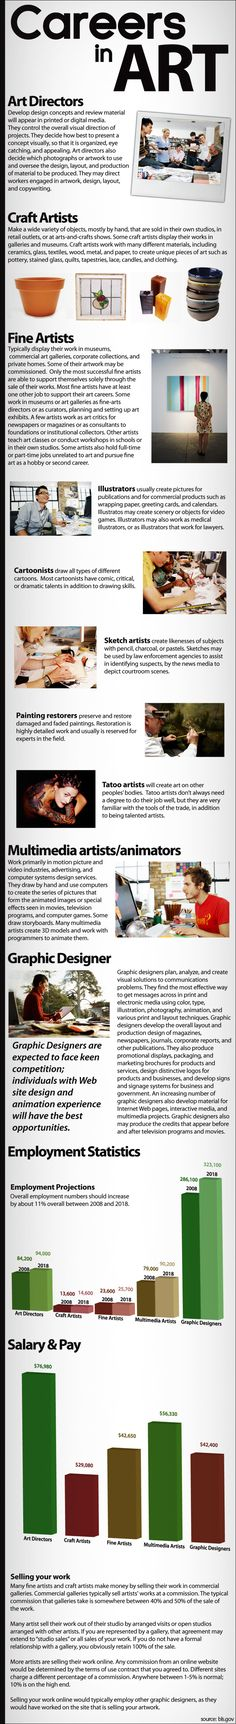 Careers in Art infographic by Madison Art Shop